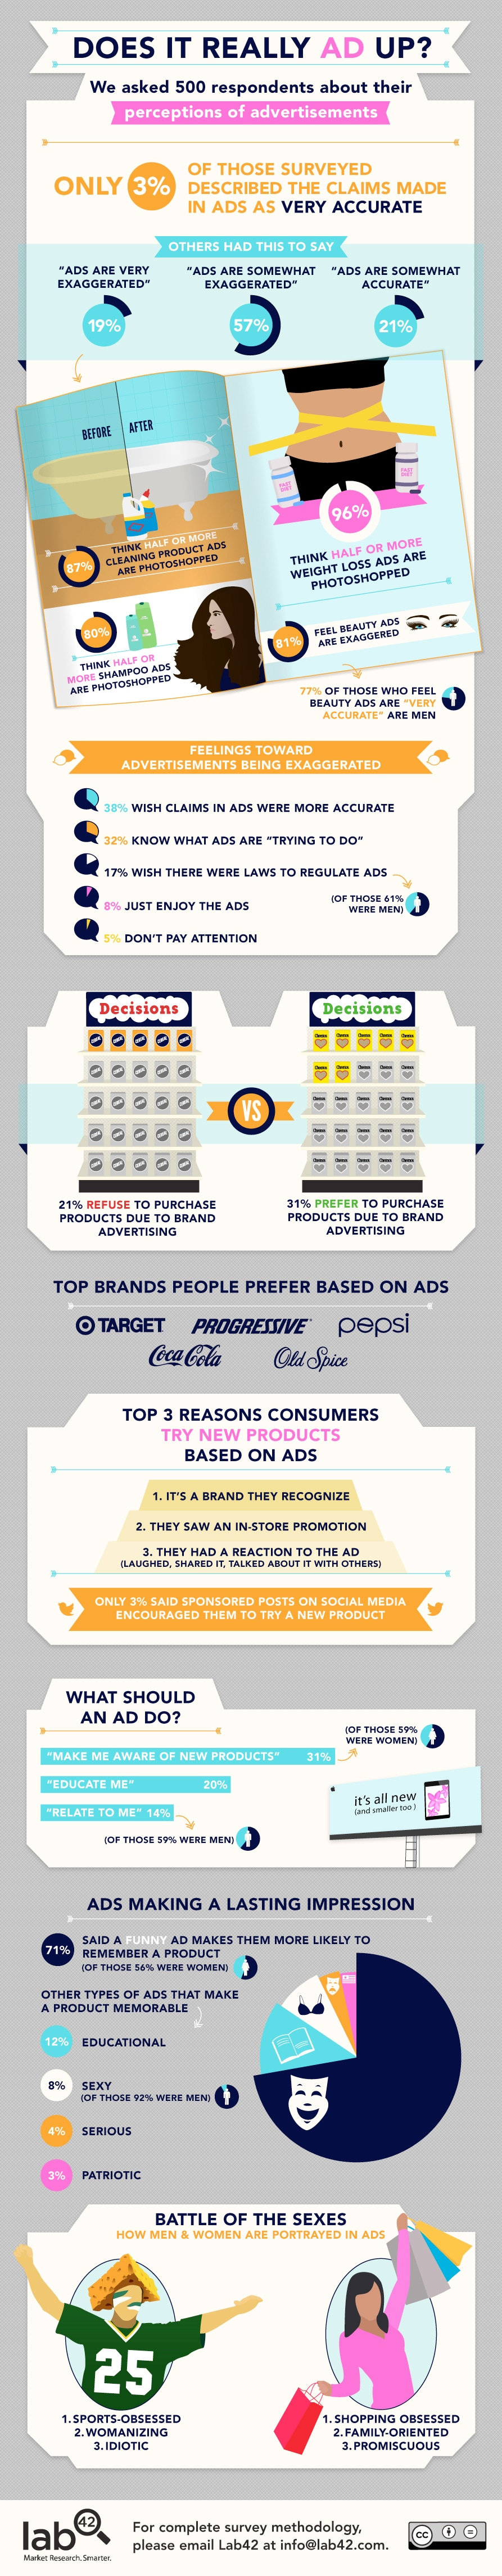 advertising-perception-inaccurate-ads-infographic